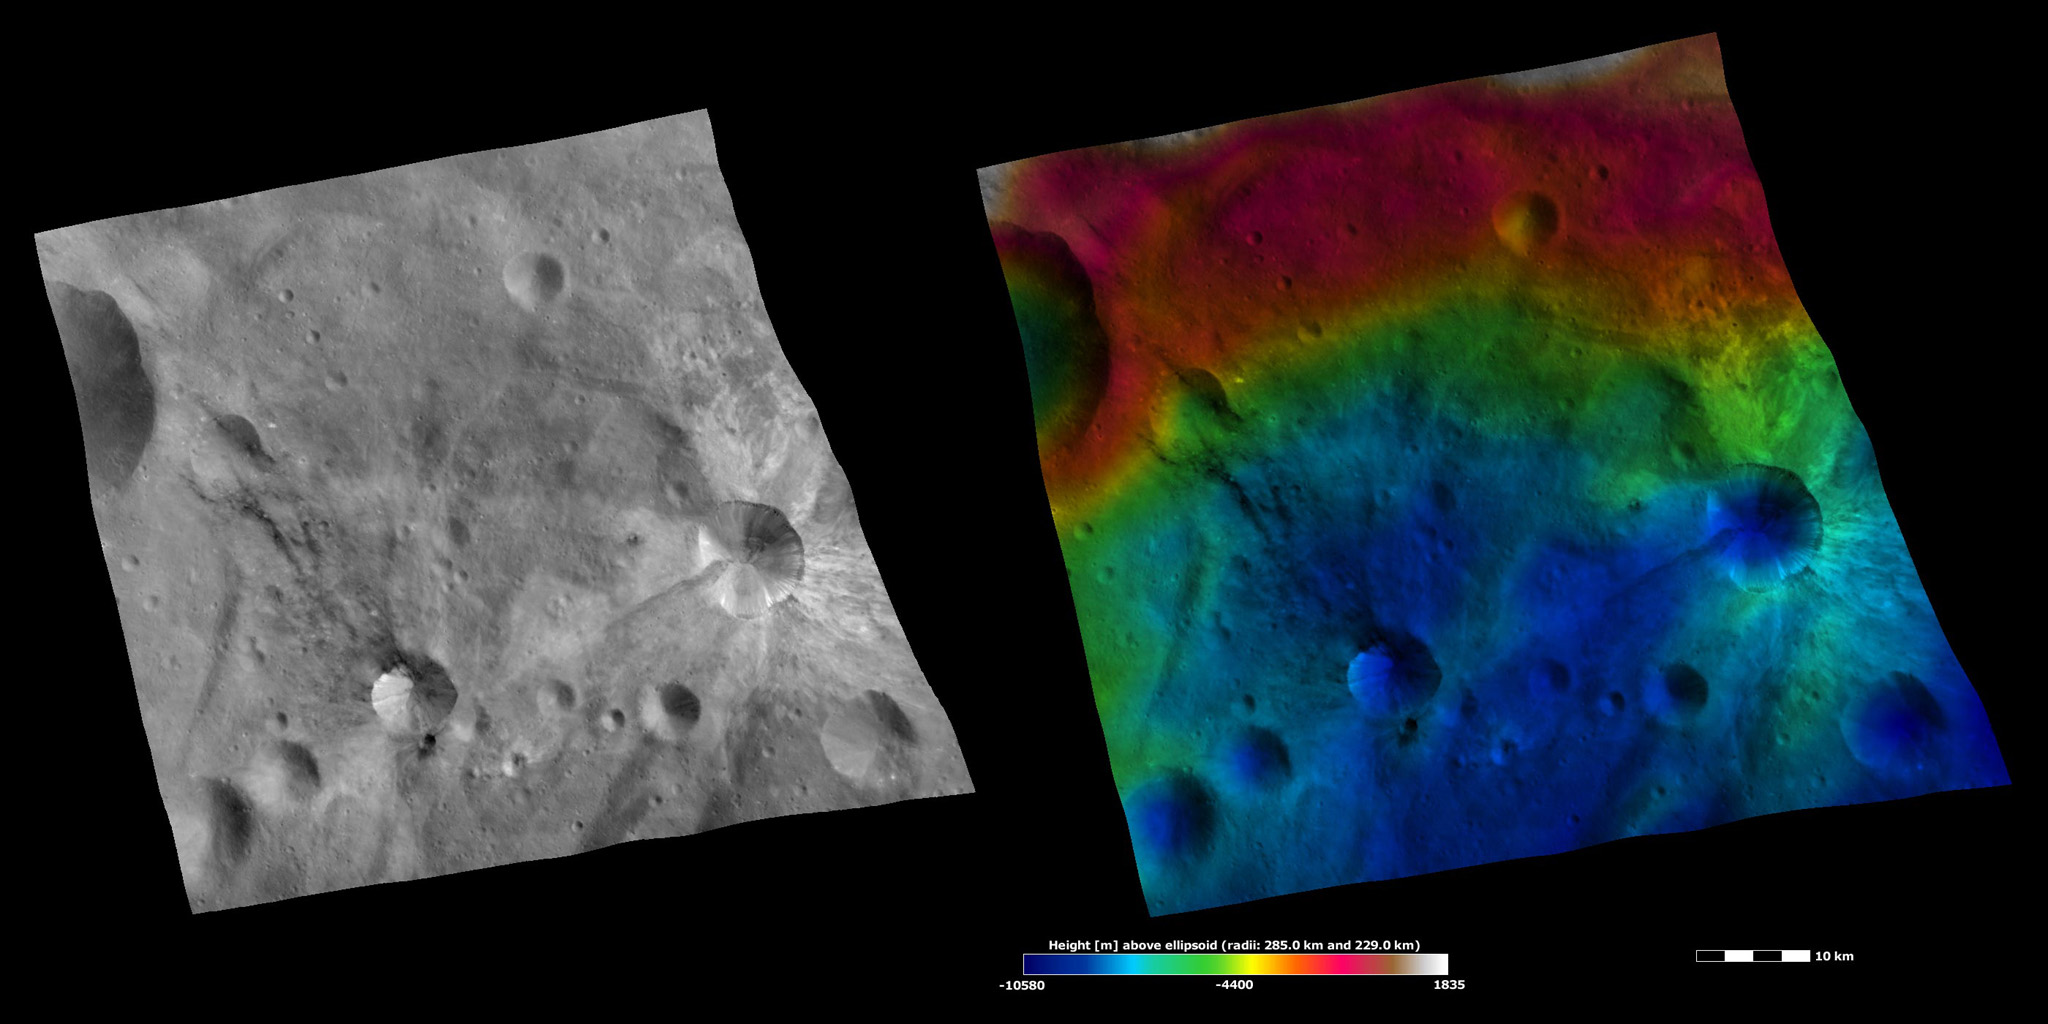 Apparent Brightness and Topography Images of Sossia and Canuleia Craters